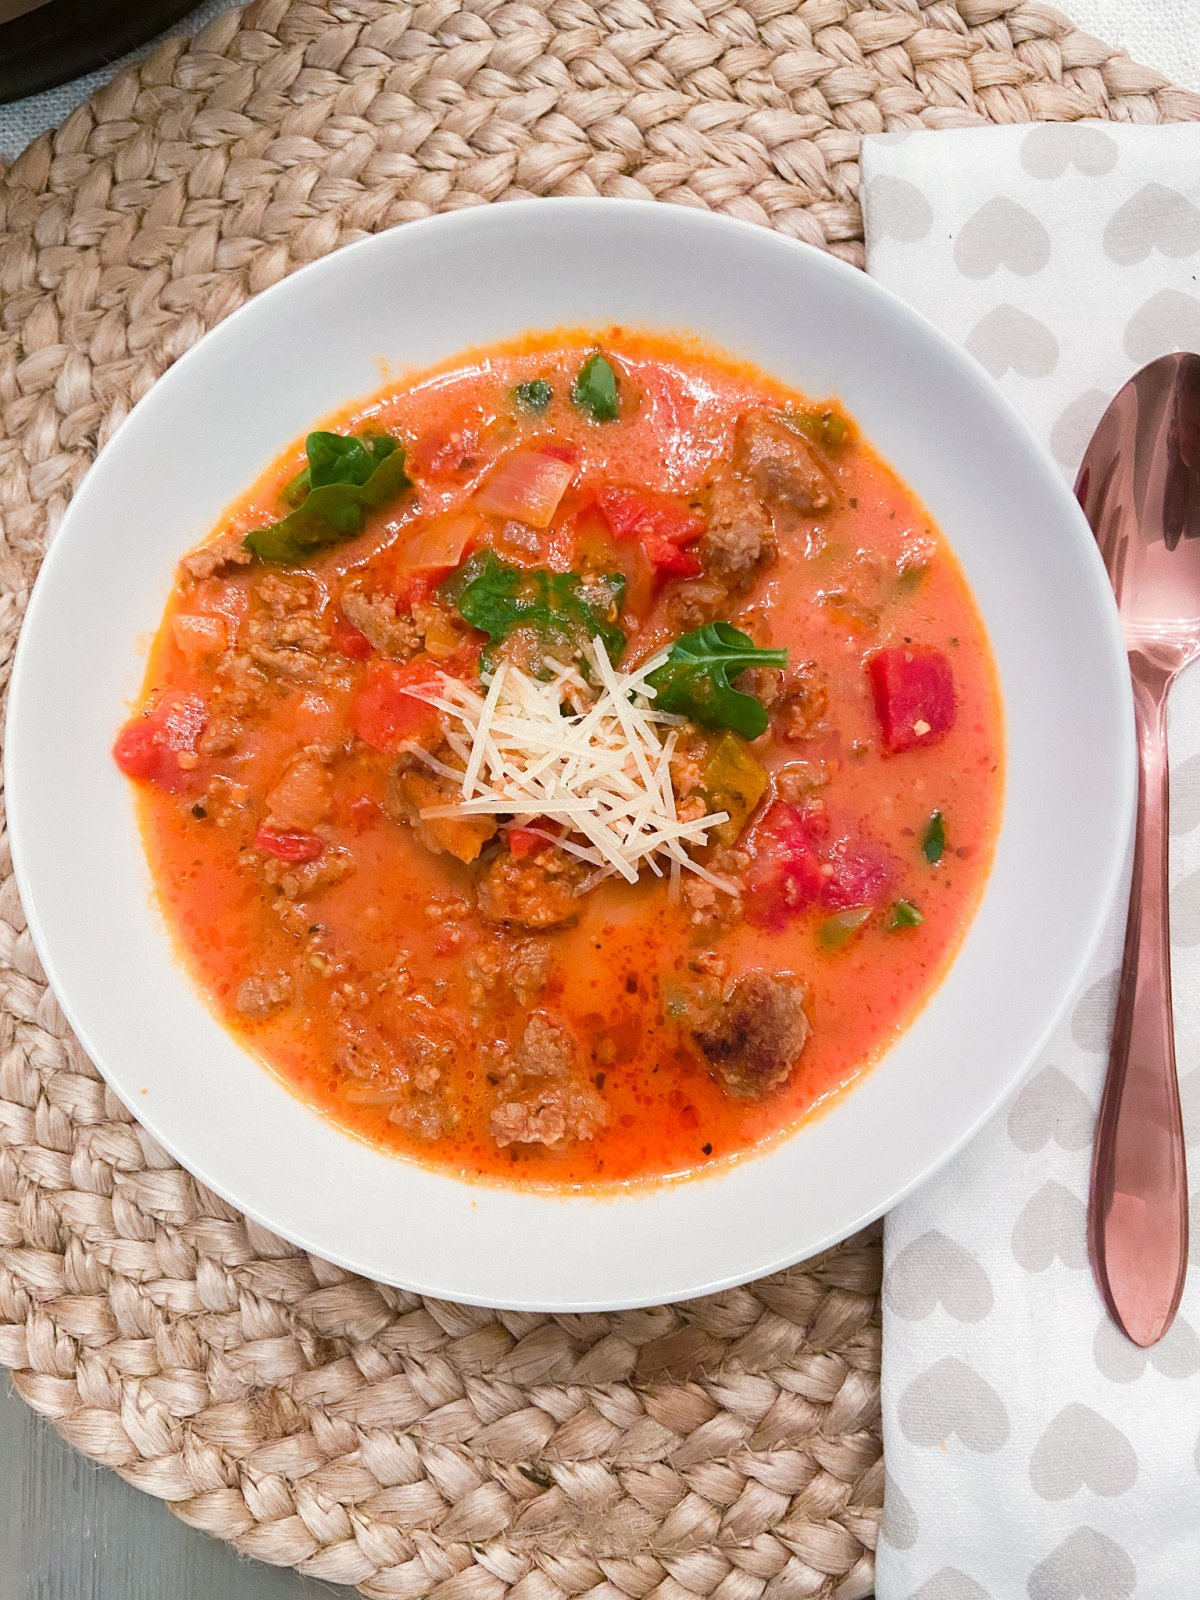 Keto Instant Pot Spicy Italian Soup. Spicy Italian sausage, herbs and veggies in a thick creamy sauce is the perfect soup to make for Winter!